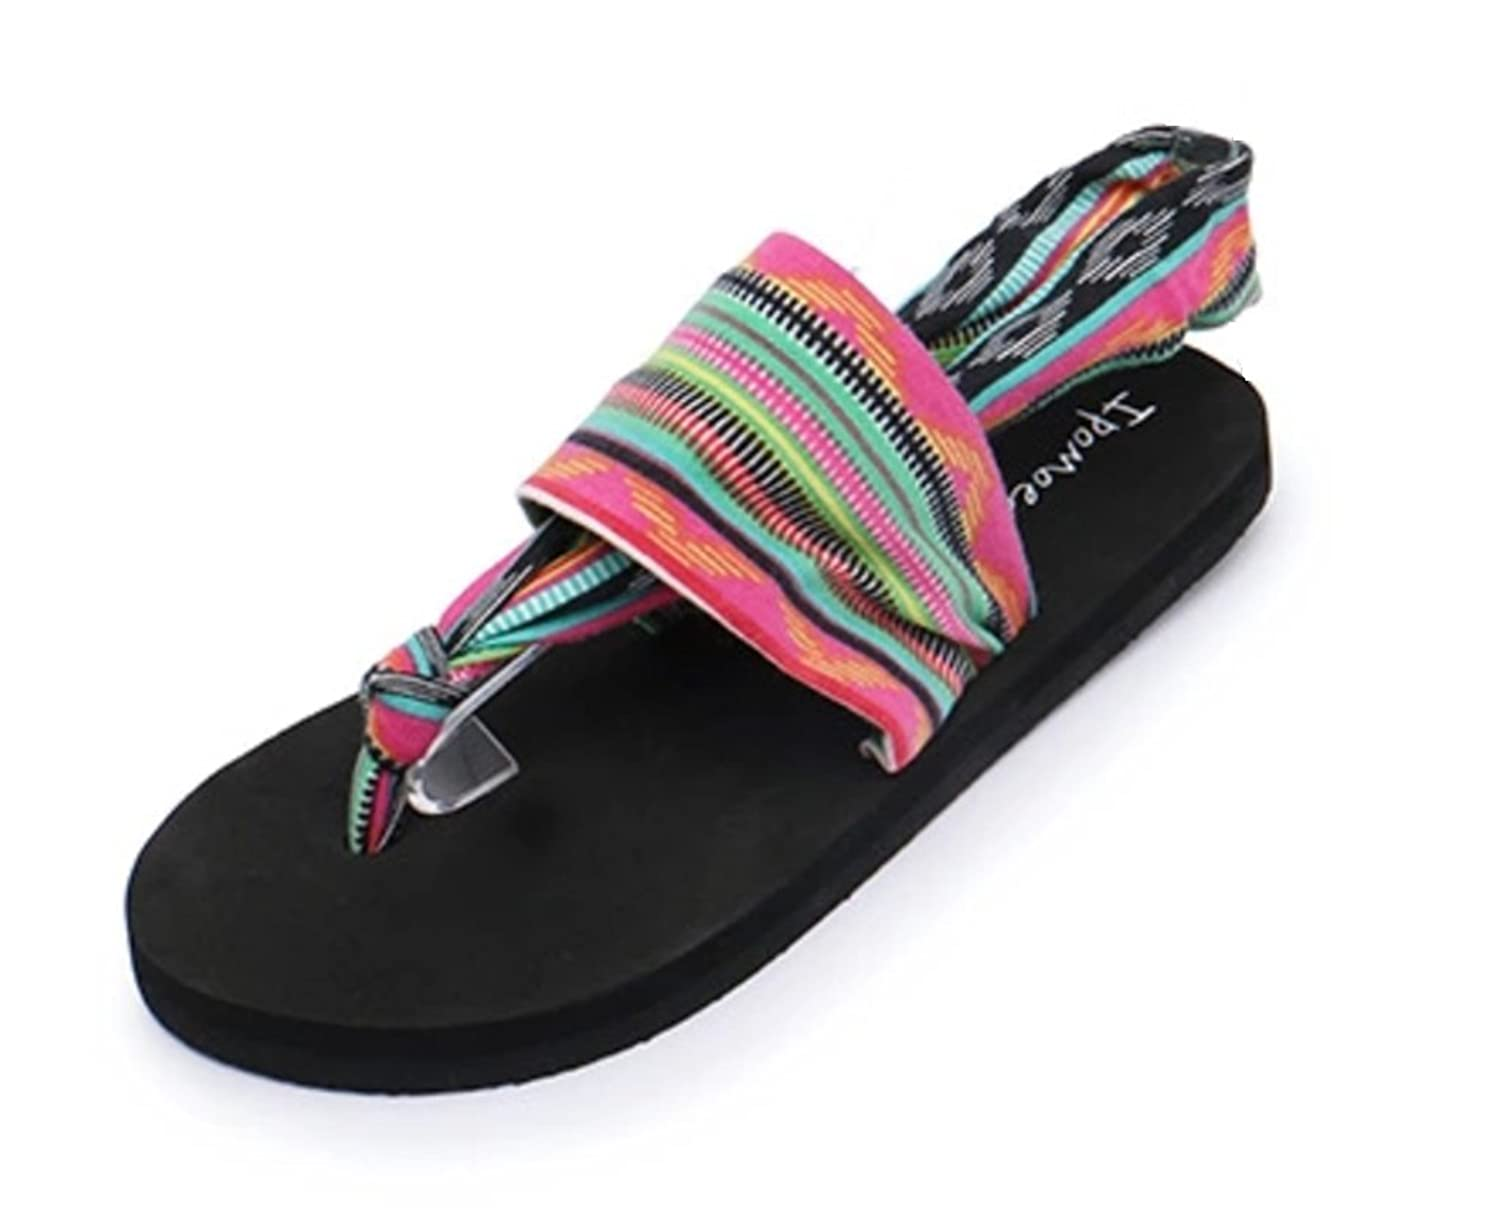 Sosushoe Womens Yoga Sling Flip Flop Flats Sandals by Sosushoe